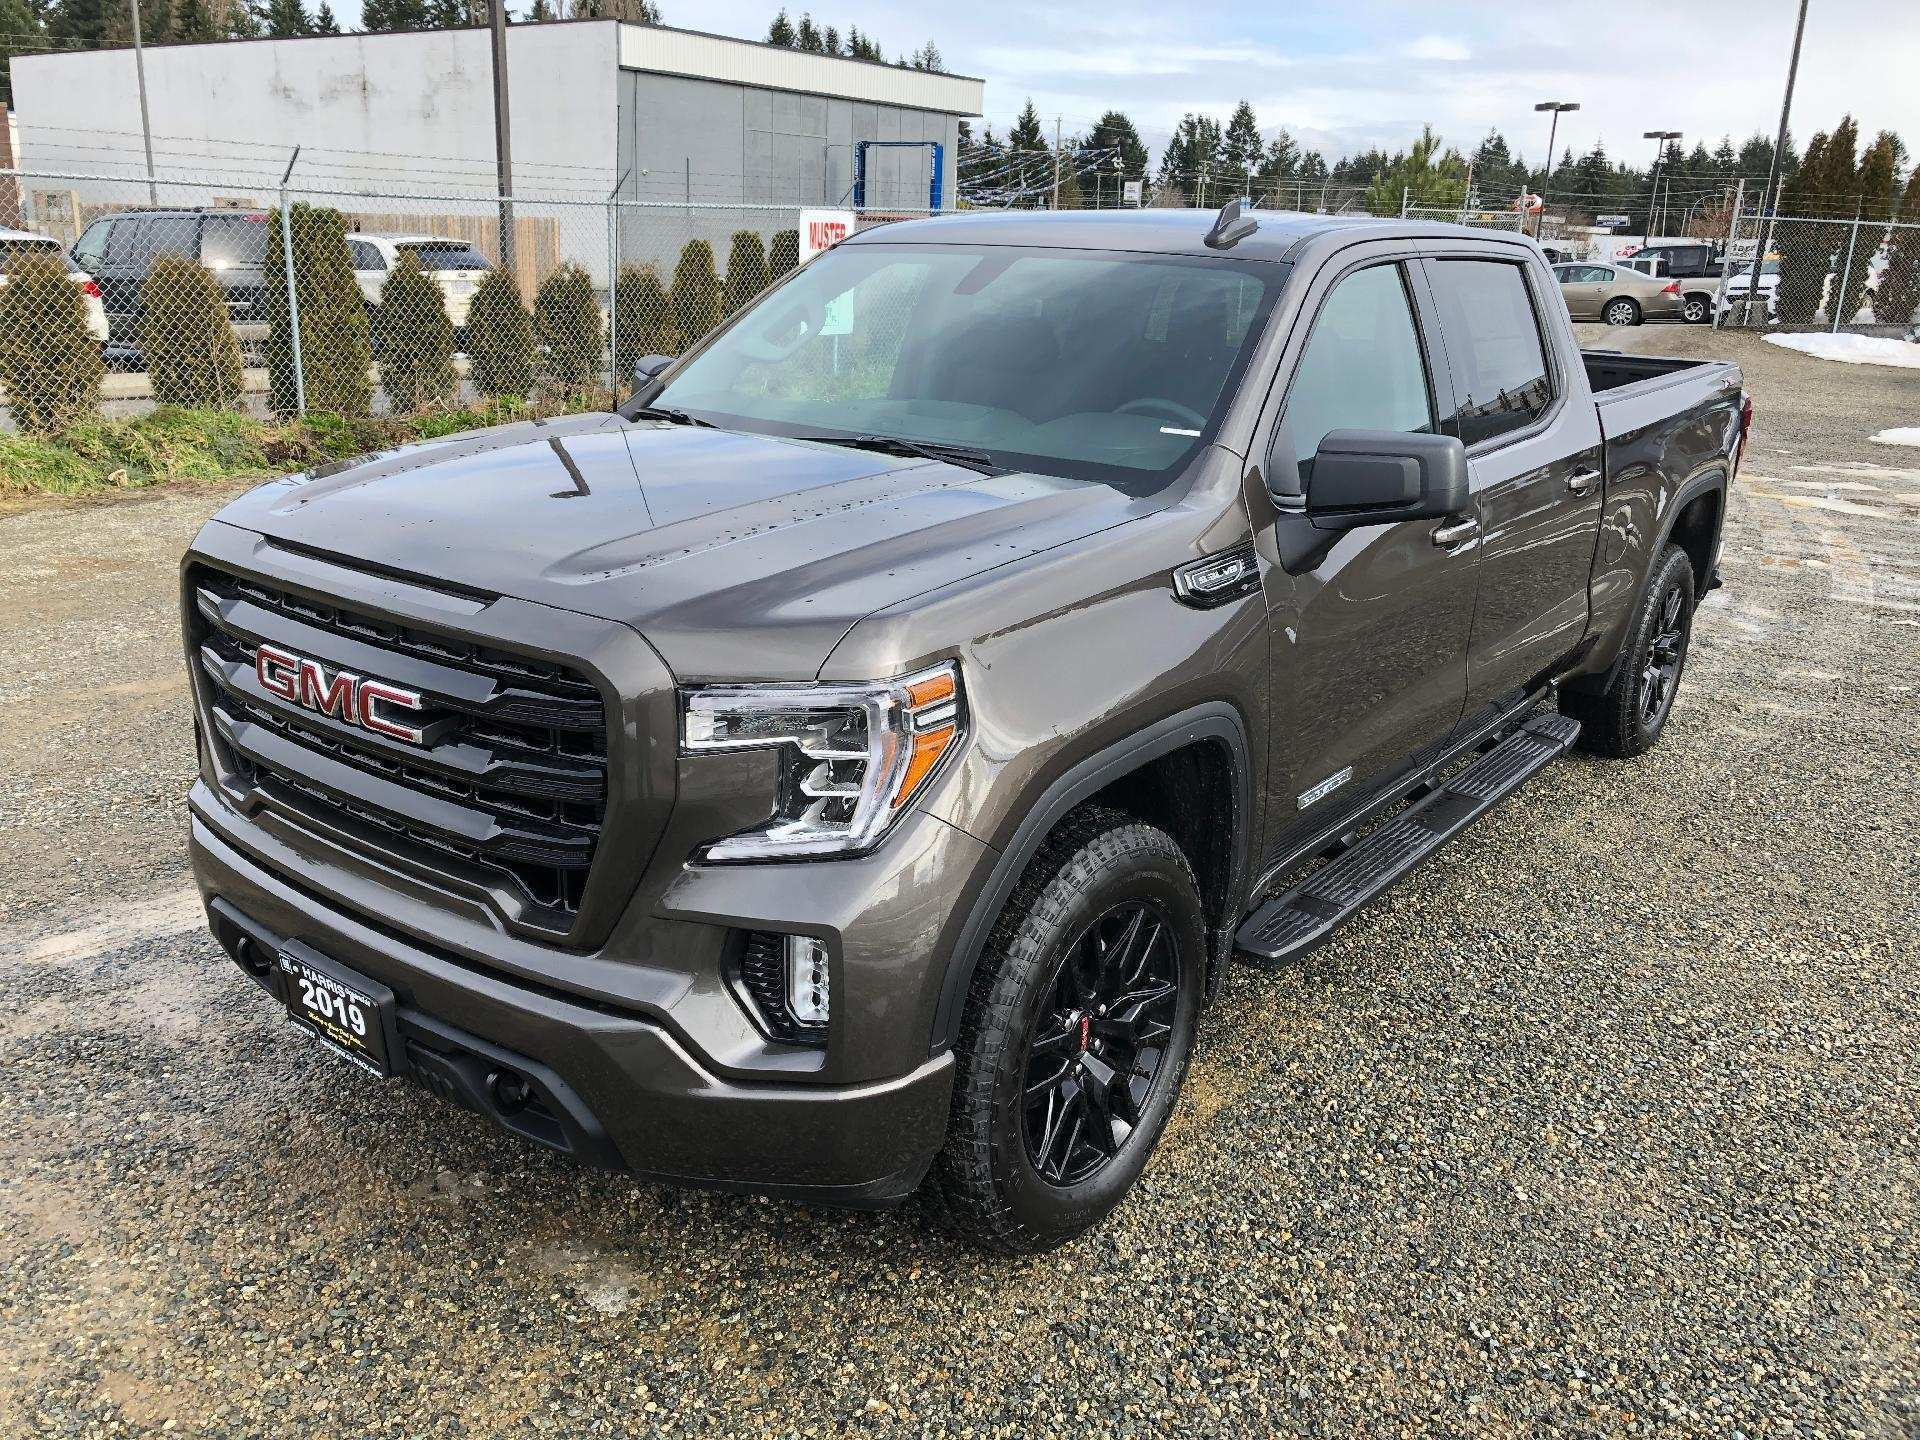 19 Best 2019 GMC Sierra 1500 Interior